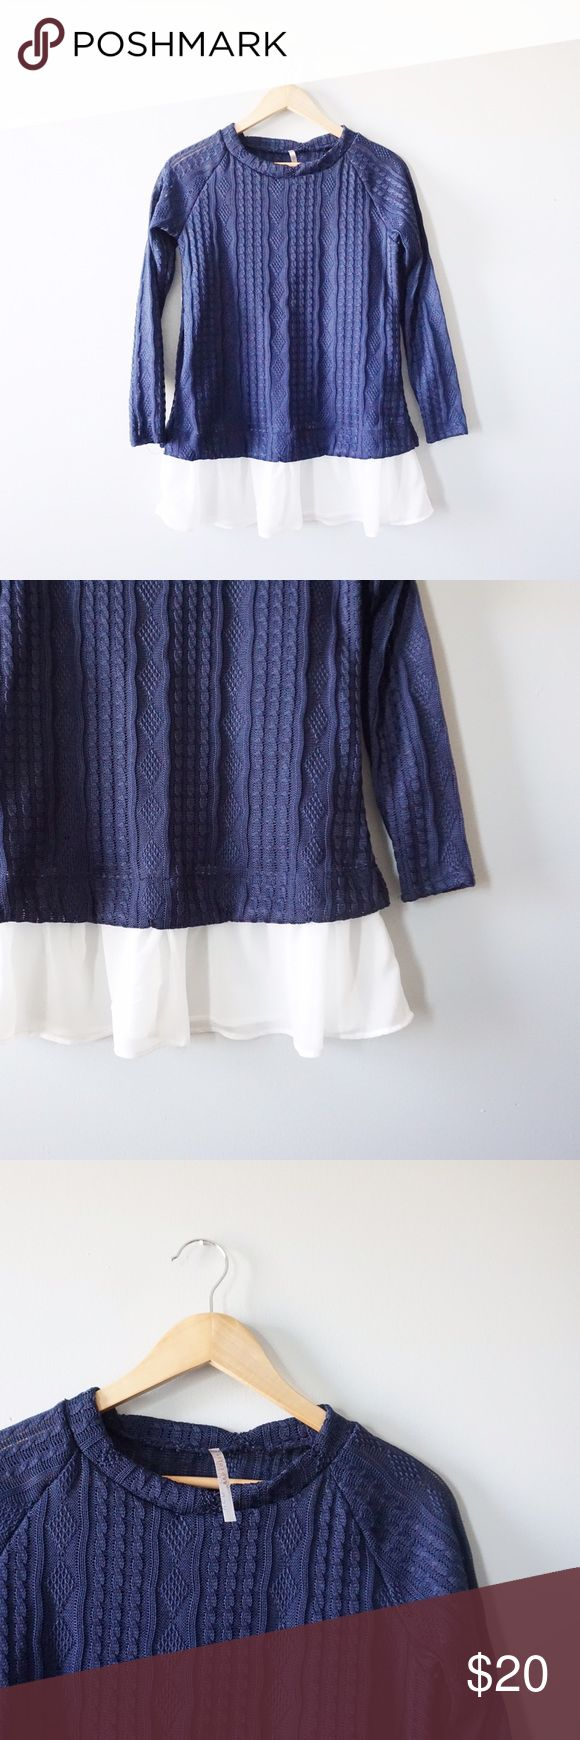 Knit Chiffon Peplum Layered Top Boutique brand Red Lolly blue and white peplum top size small. Chiffon detailing. Long sleeves. No stains rips or tears. Red Lolly Tops Blouses